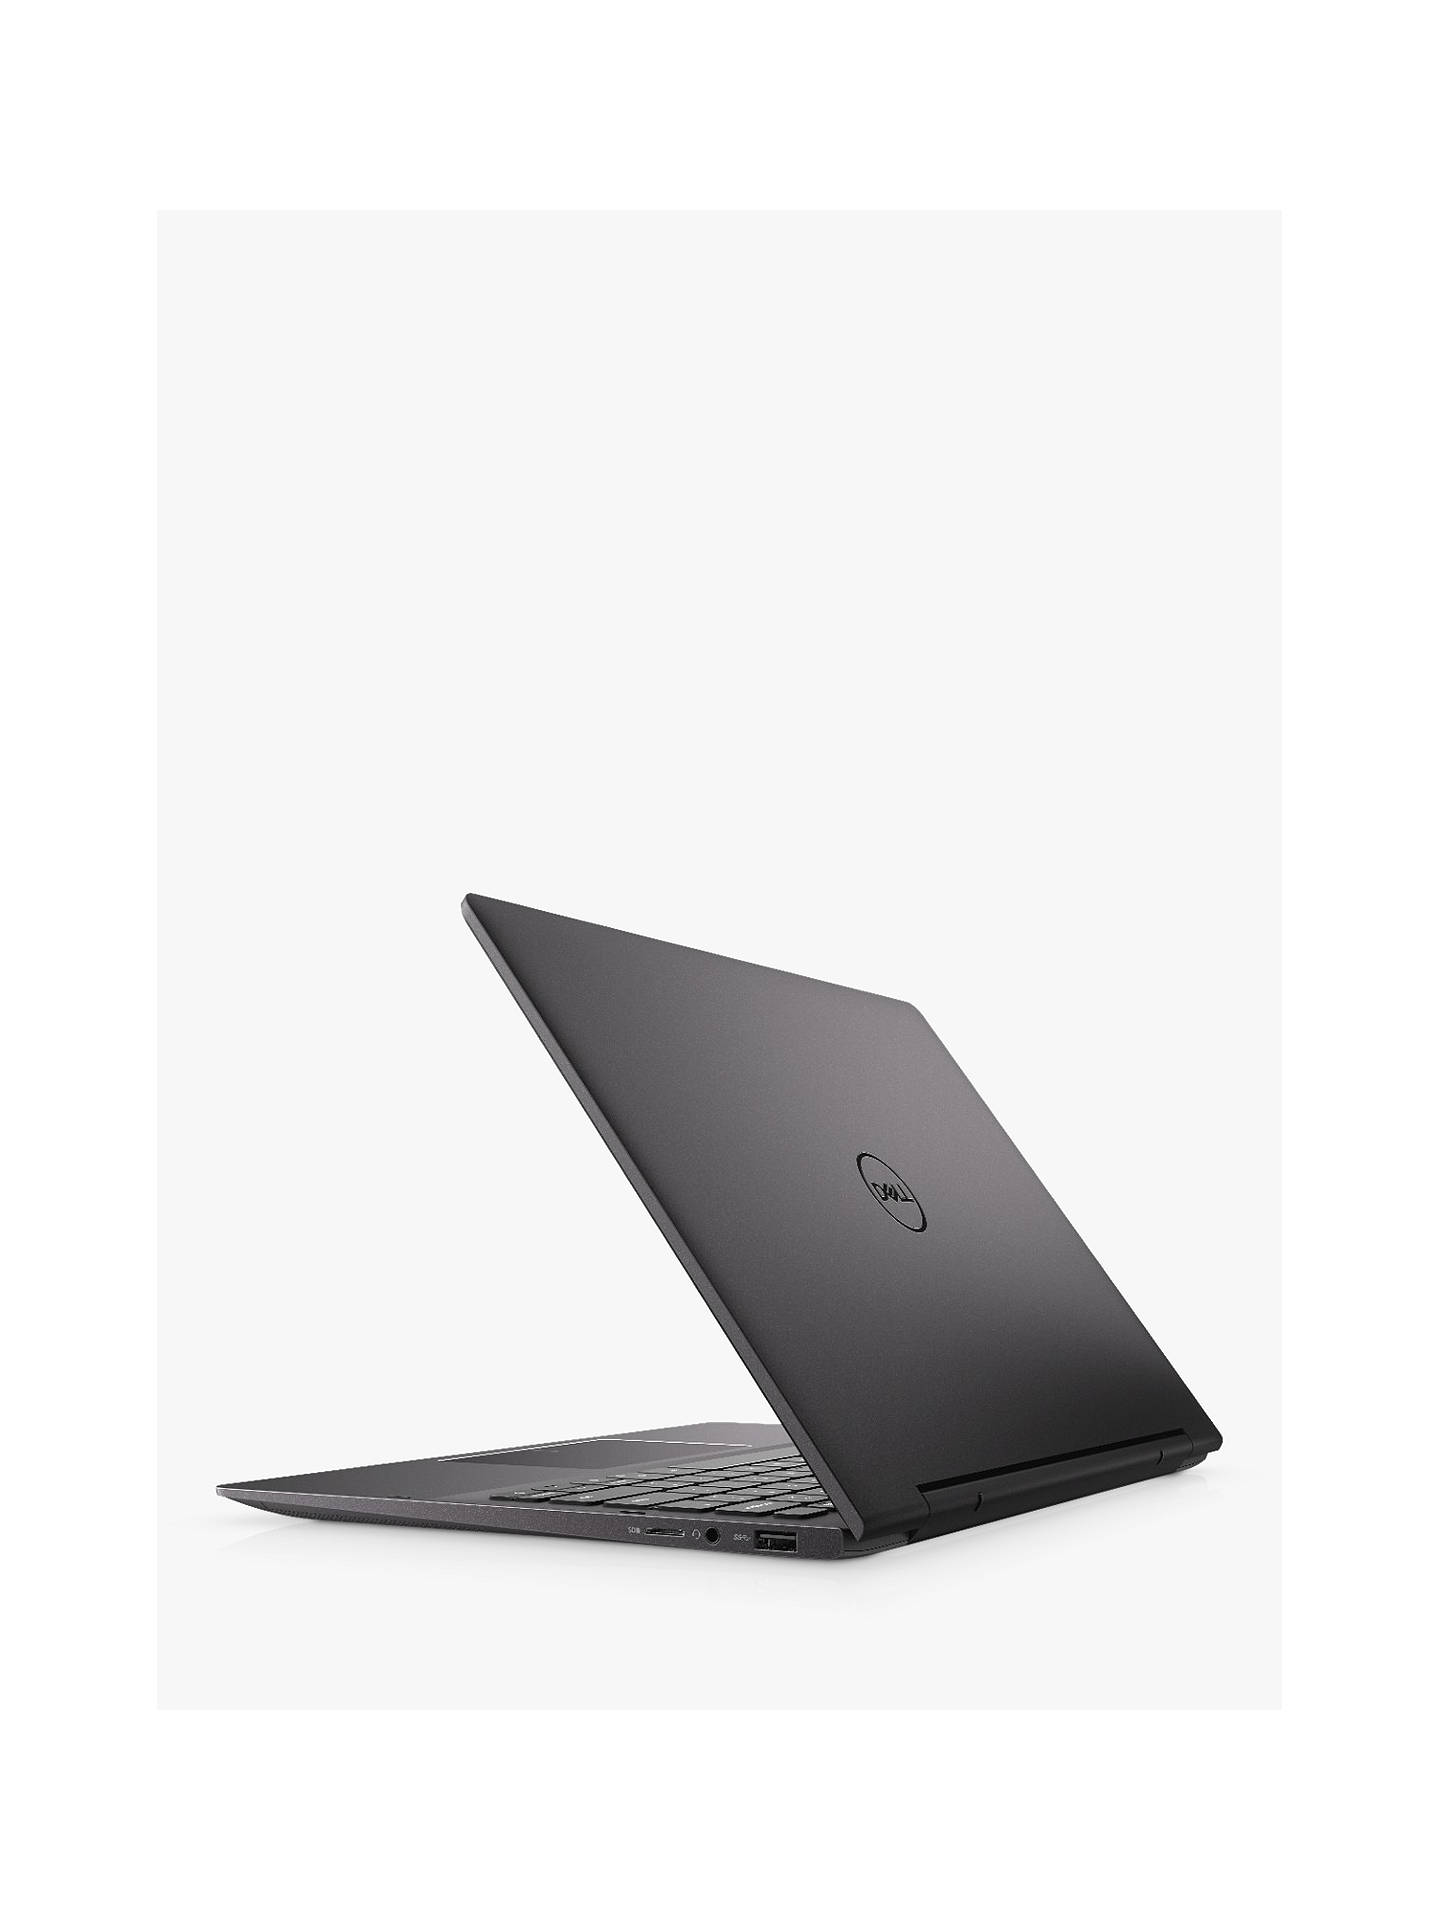 "Buy Dell Inspiron 13 7391 Convertible Laptop, Intel i7 Processor, 8GB RAM, 512GB SSD, 13.3"" Full HD, Black Online at johnlewis.com"